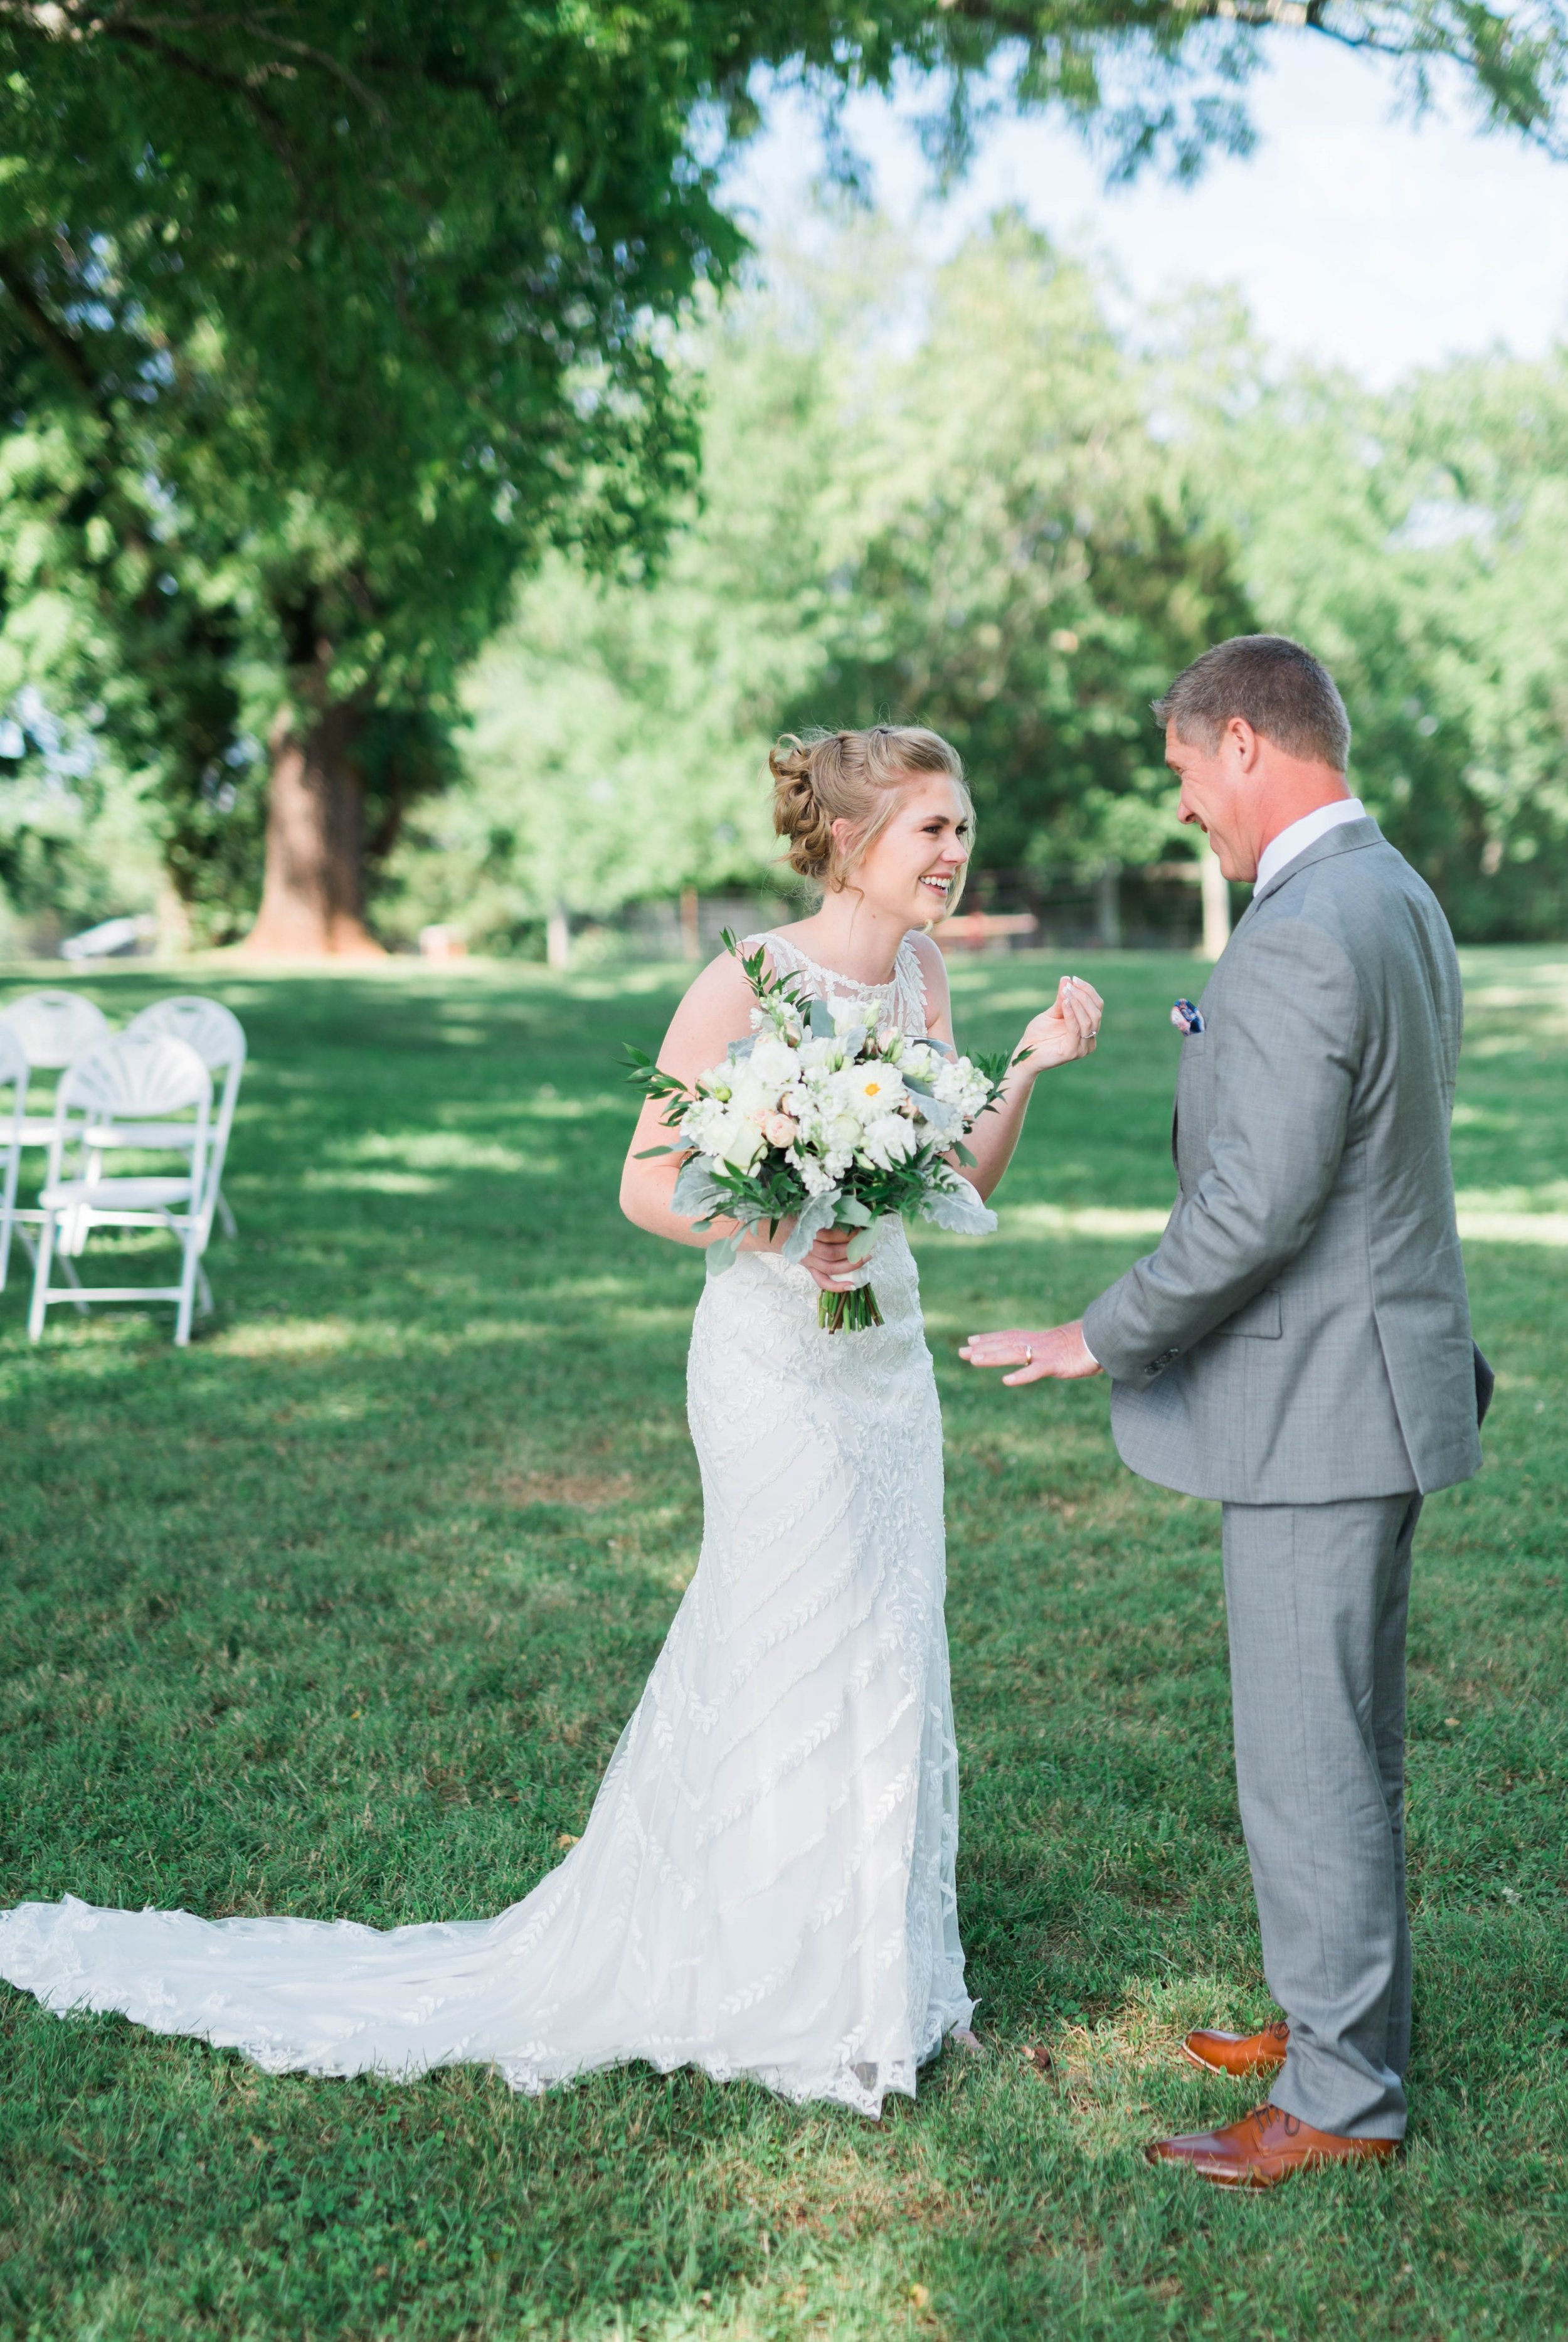 SorellaFarms_VirginiaWeddingPhotographer_BarnWedding_Lynchburgweddingphotographer_DanielleTyler 30.jpg